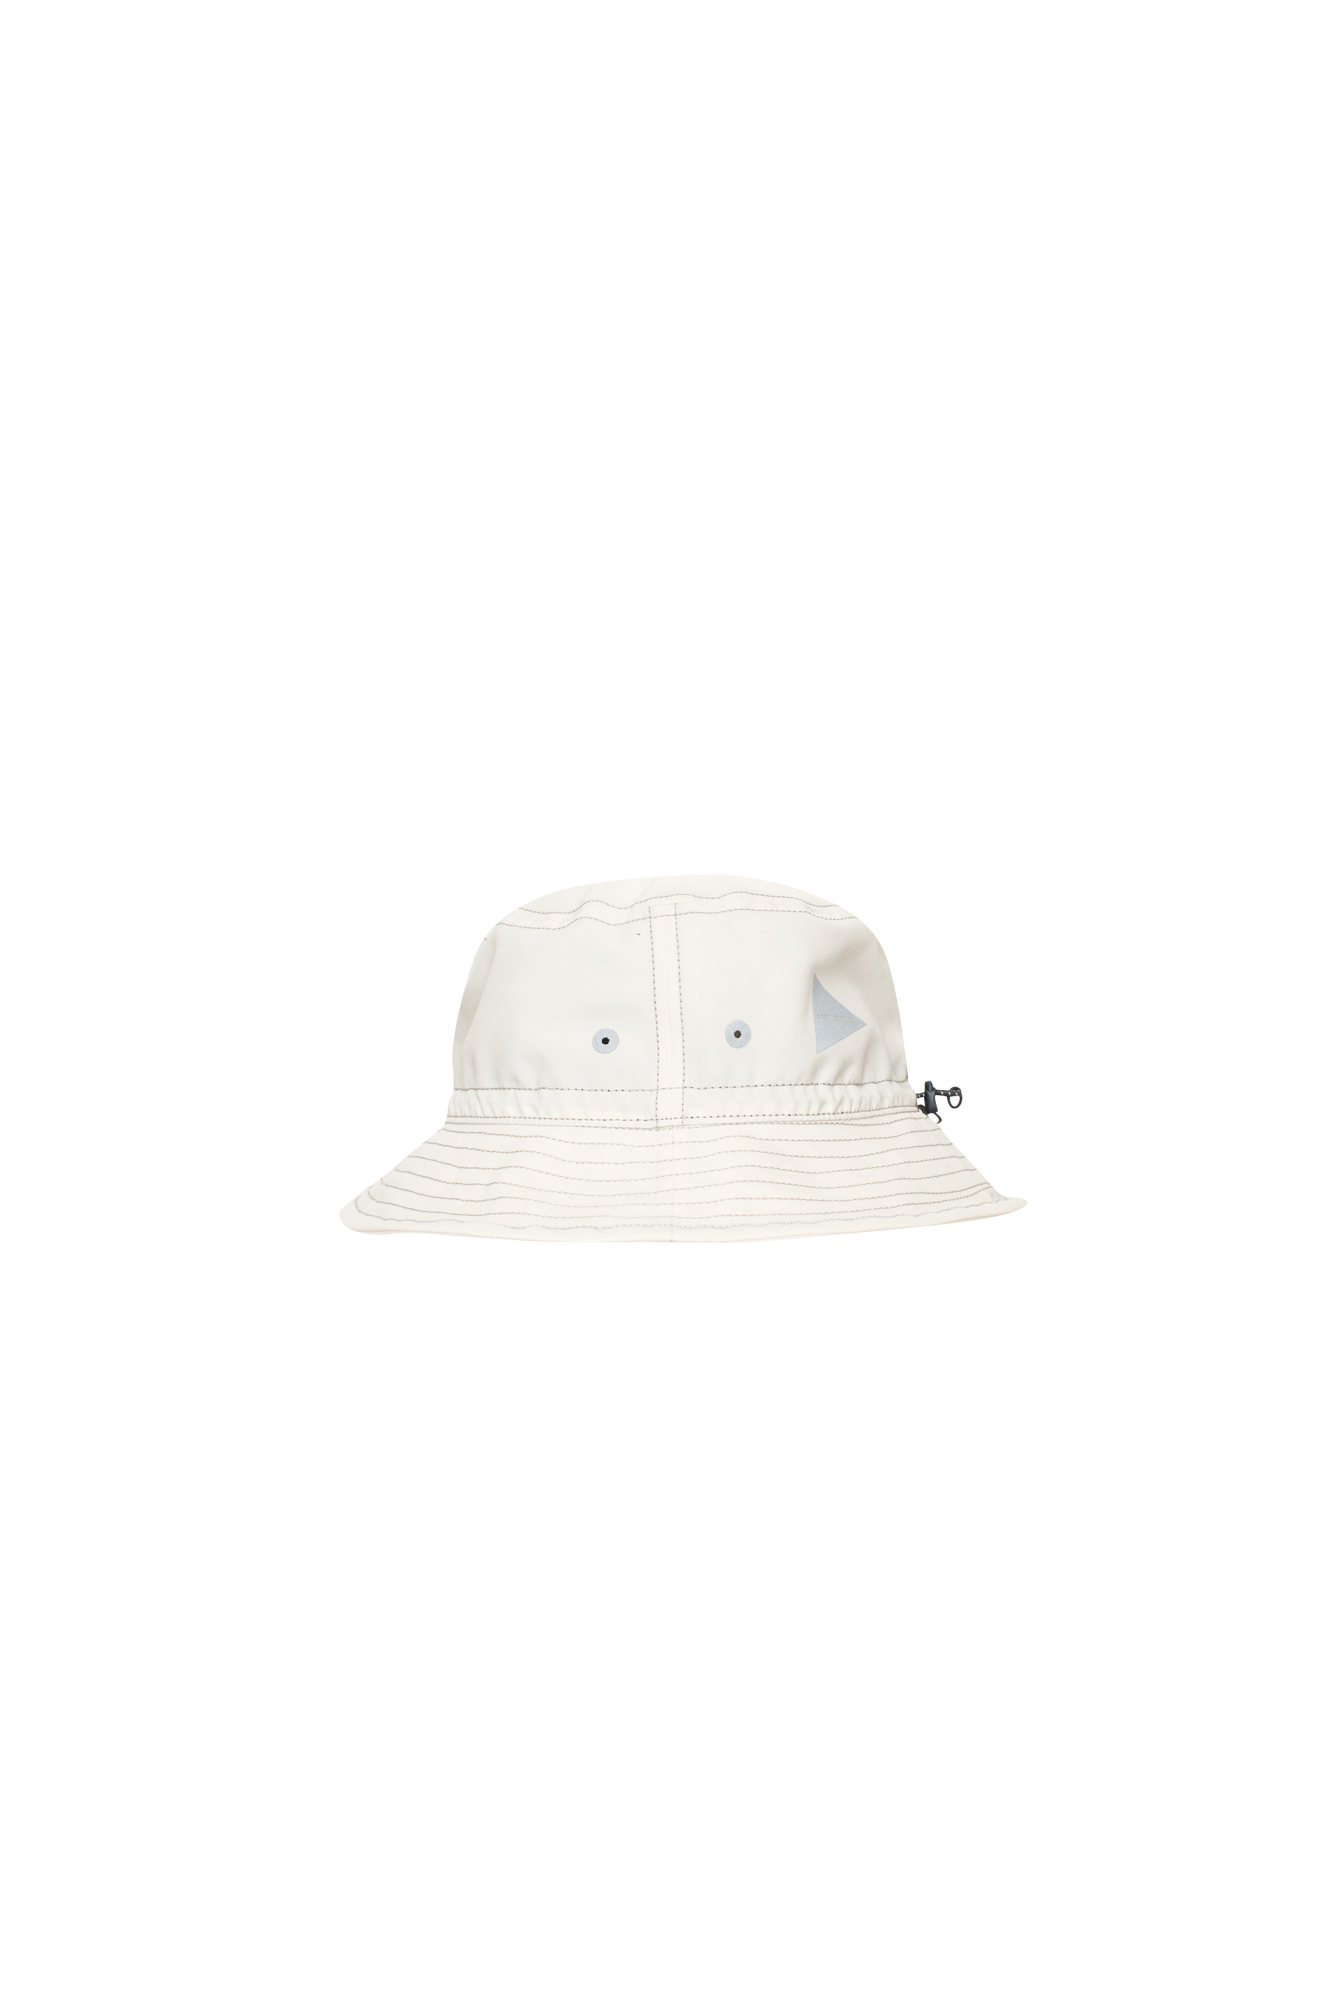 And Wander Hats PE/CO Hat White 5741986539#000#031#OS - One Block Down